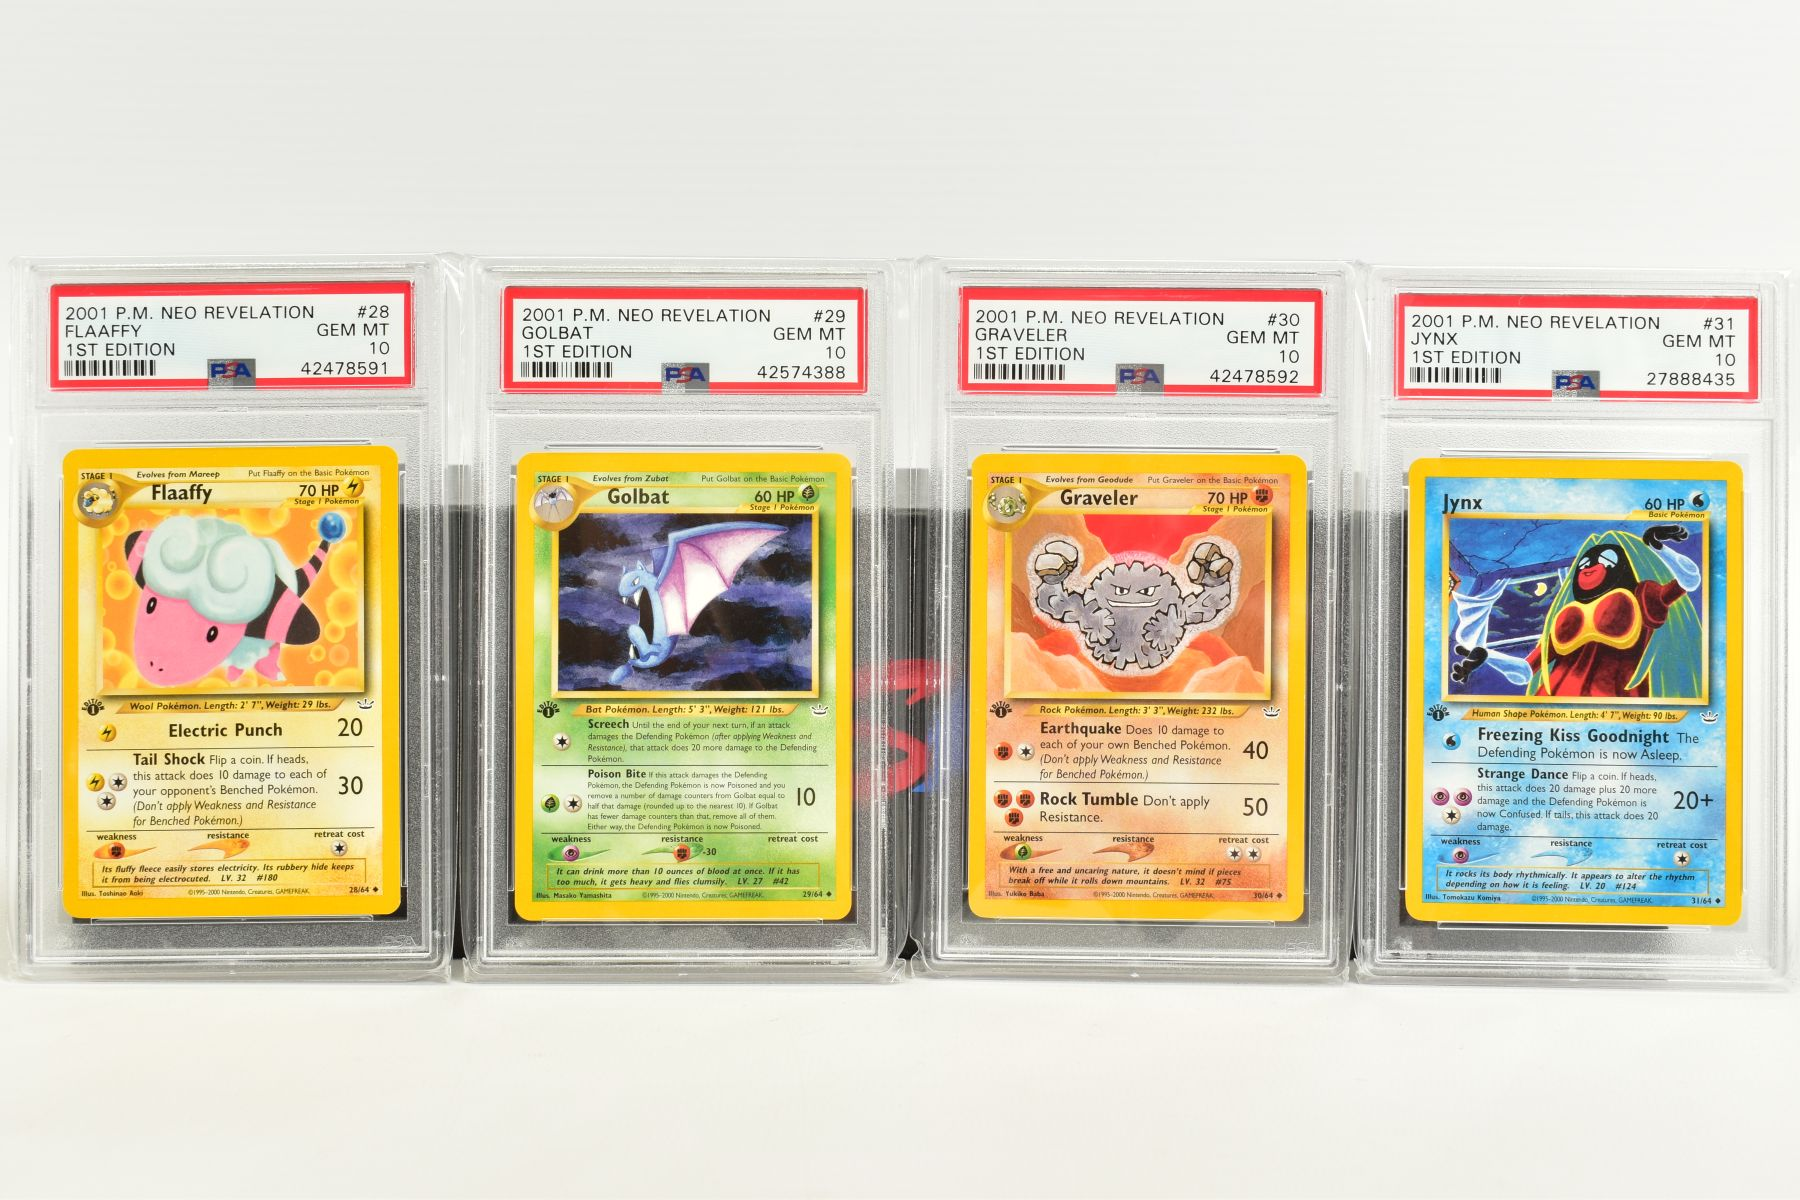 A QUANTITY OF PSA GRADED POKEMON 1ST EDITION NEO REVELATION SET CARDS, all are graded GEM MINT 10 - Image 6 of 14